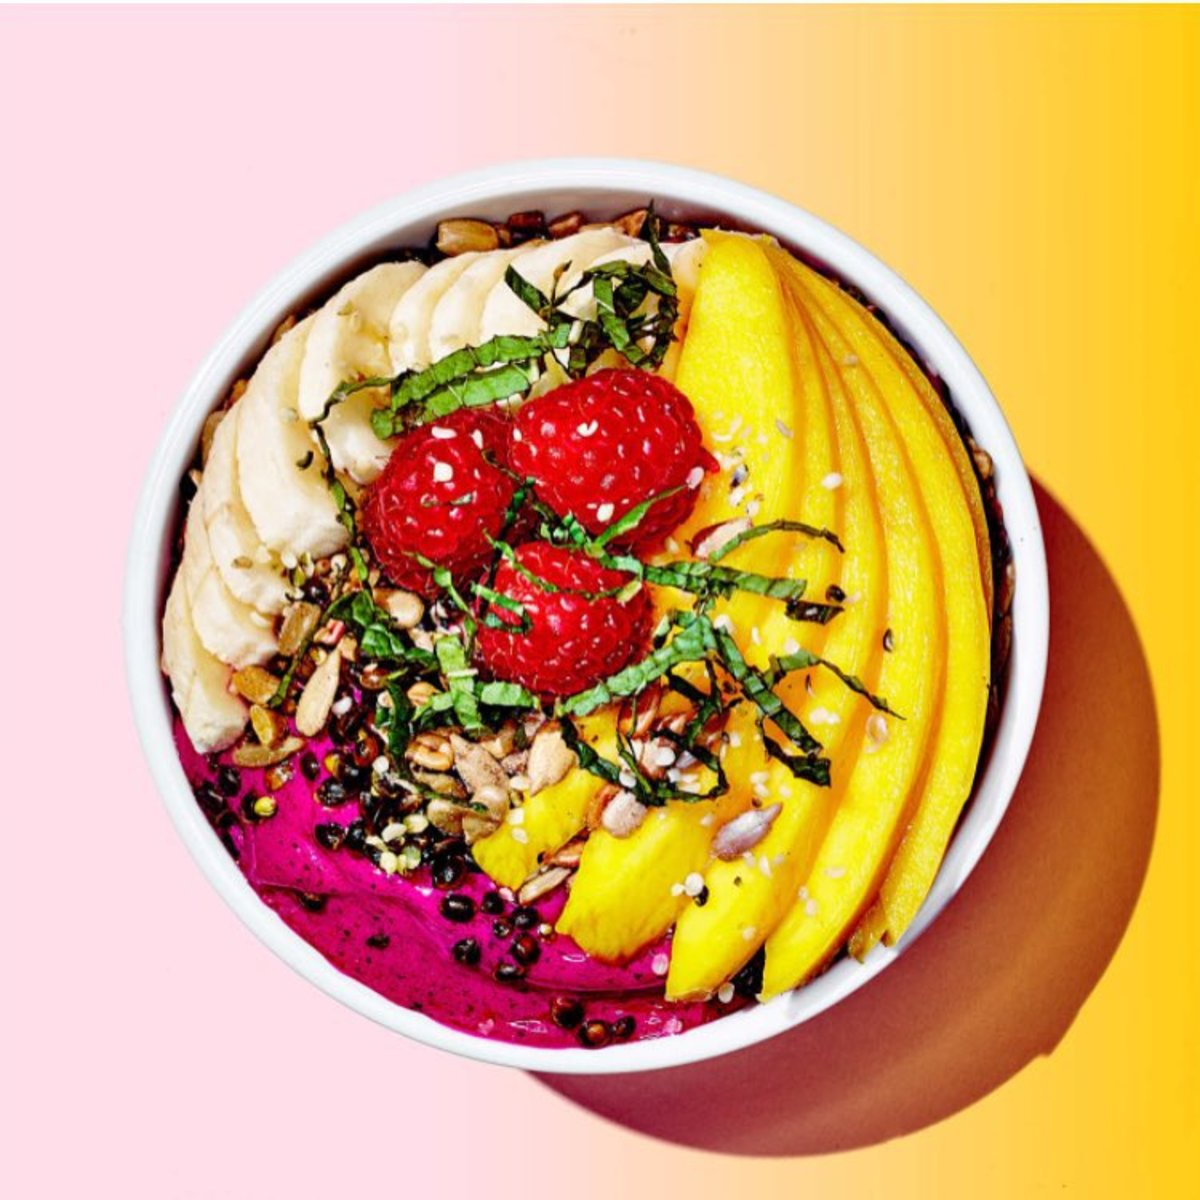 How To Make Healthy And Tasty Smoothie Bowls Delishably